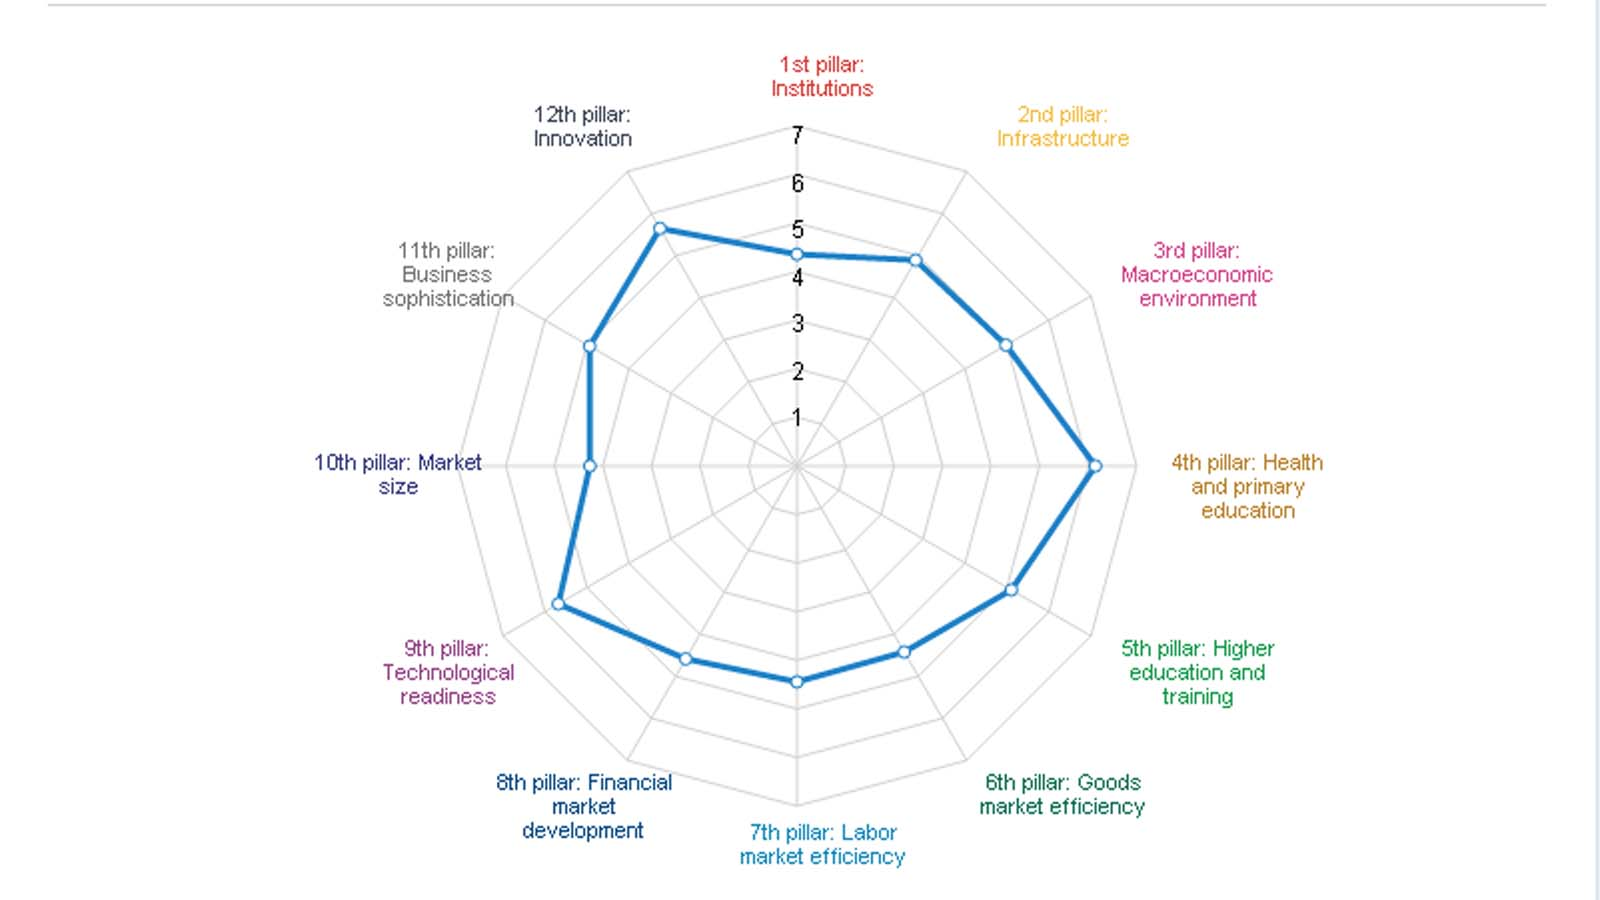 Israel's performance index as rated by the World Economic Forum for the Global Competitiveness Report 2016–2017.